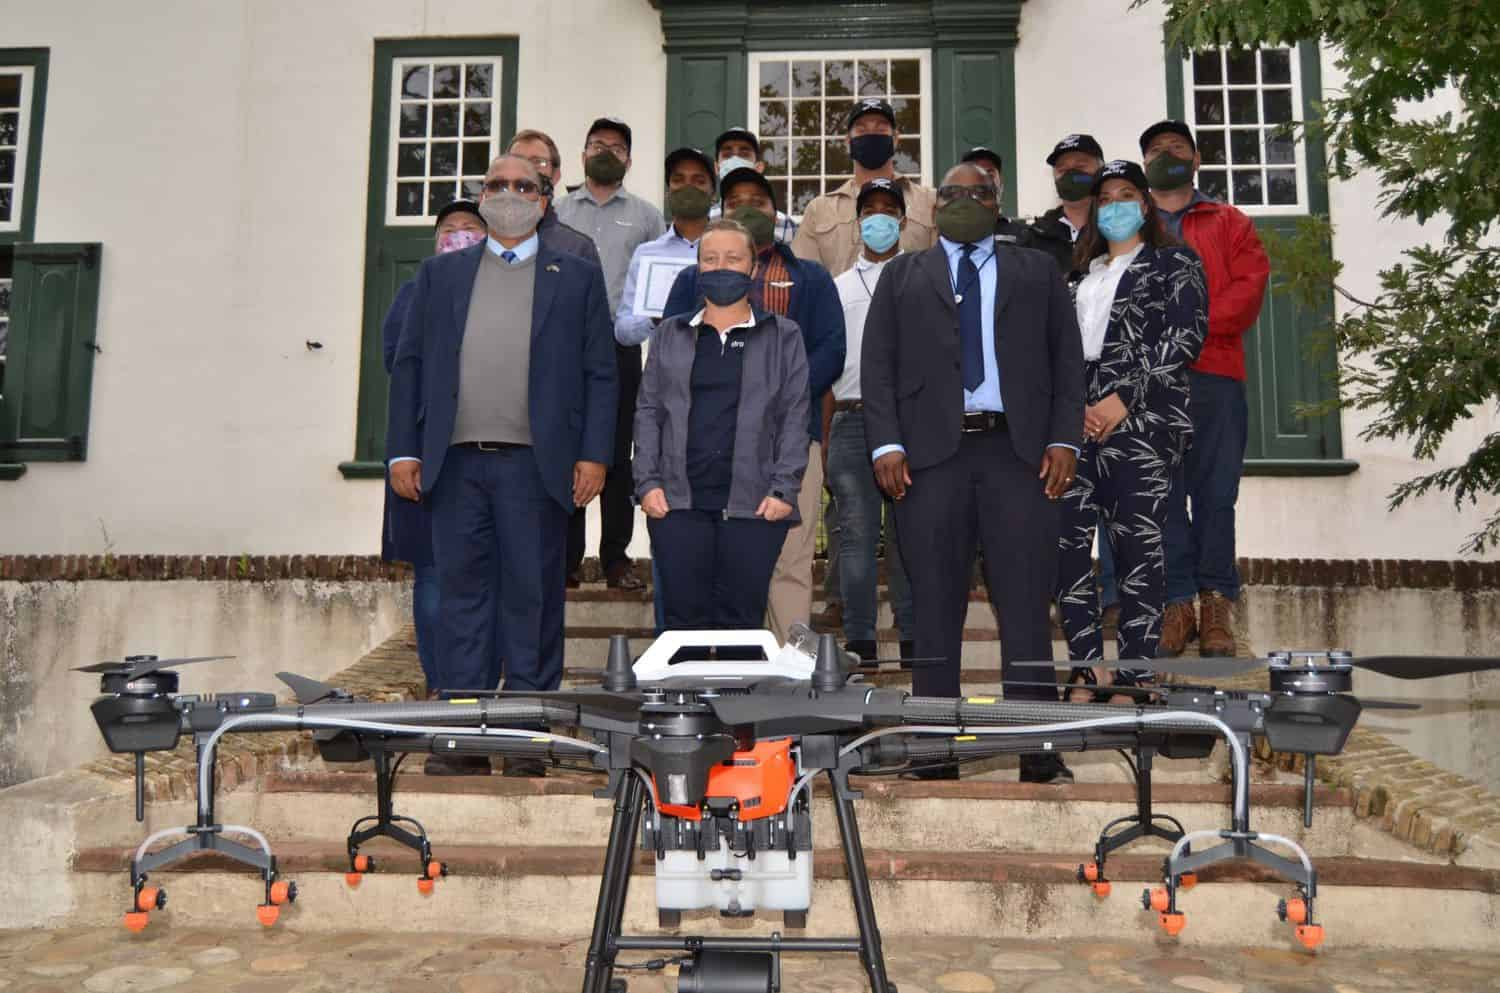 Western Cape minister of agriculture, Dr Ivan Meyer, with Dr Mogale Sebopetsa and the group of recently qualified drone pilots. Photo: Supplied